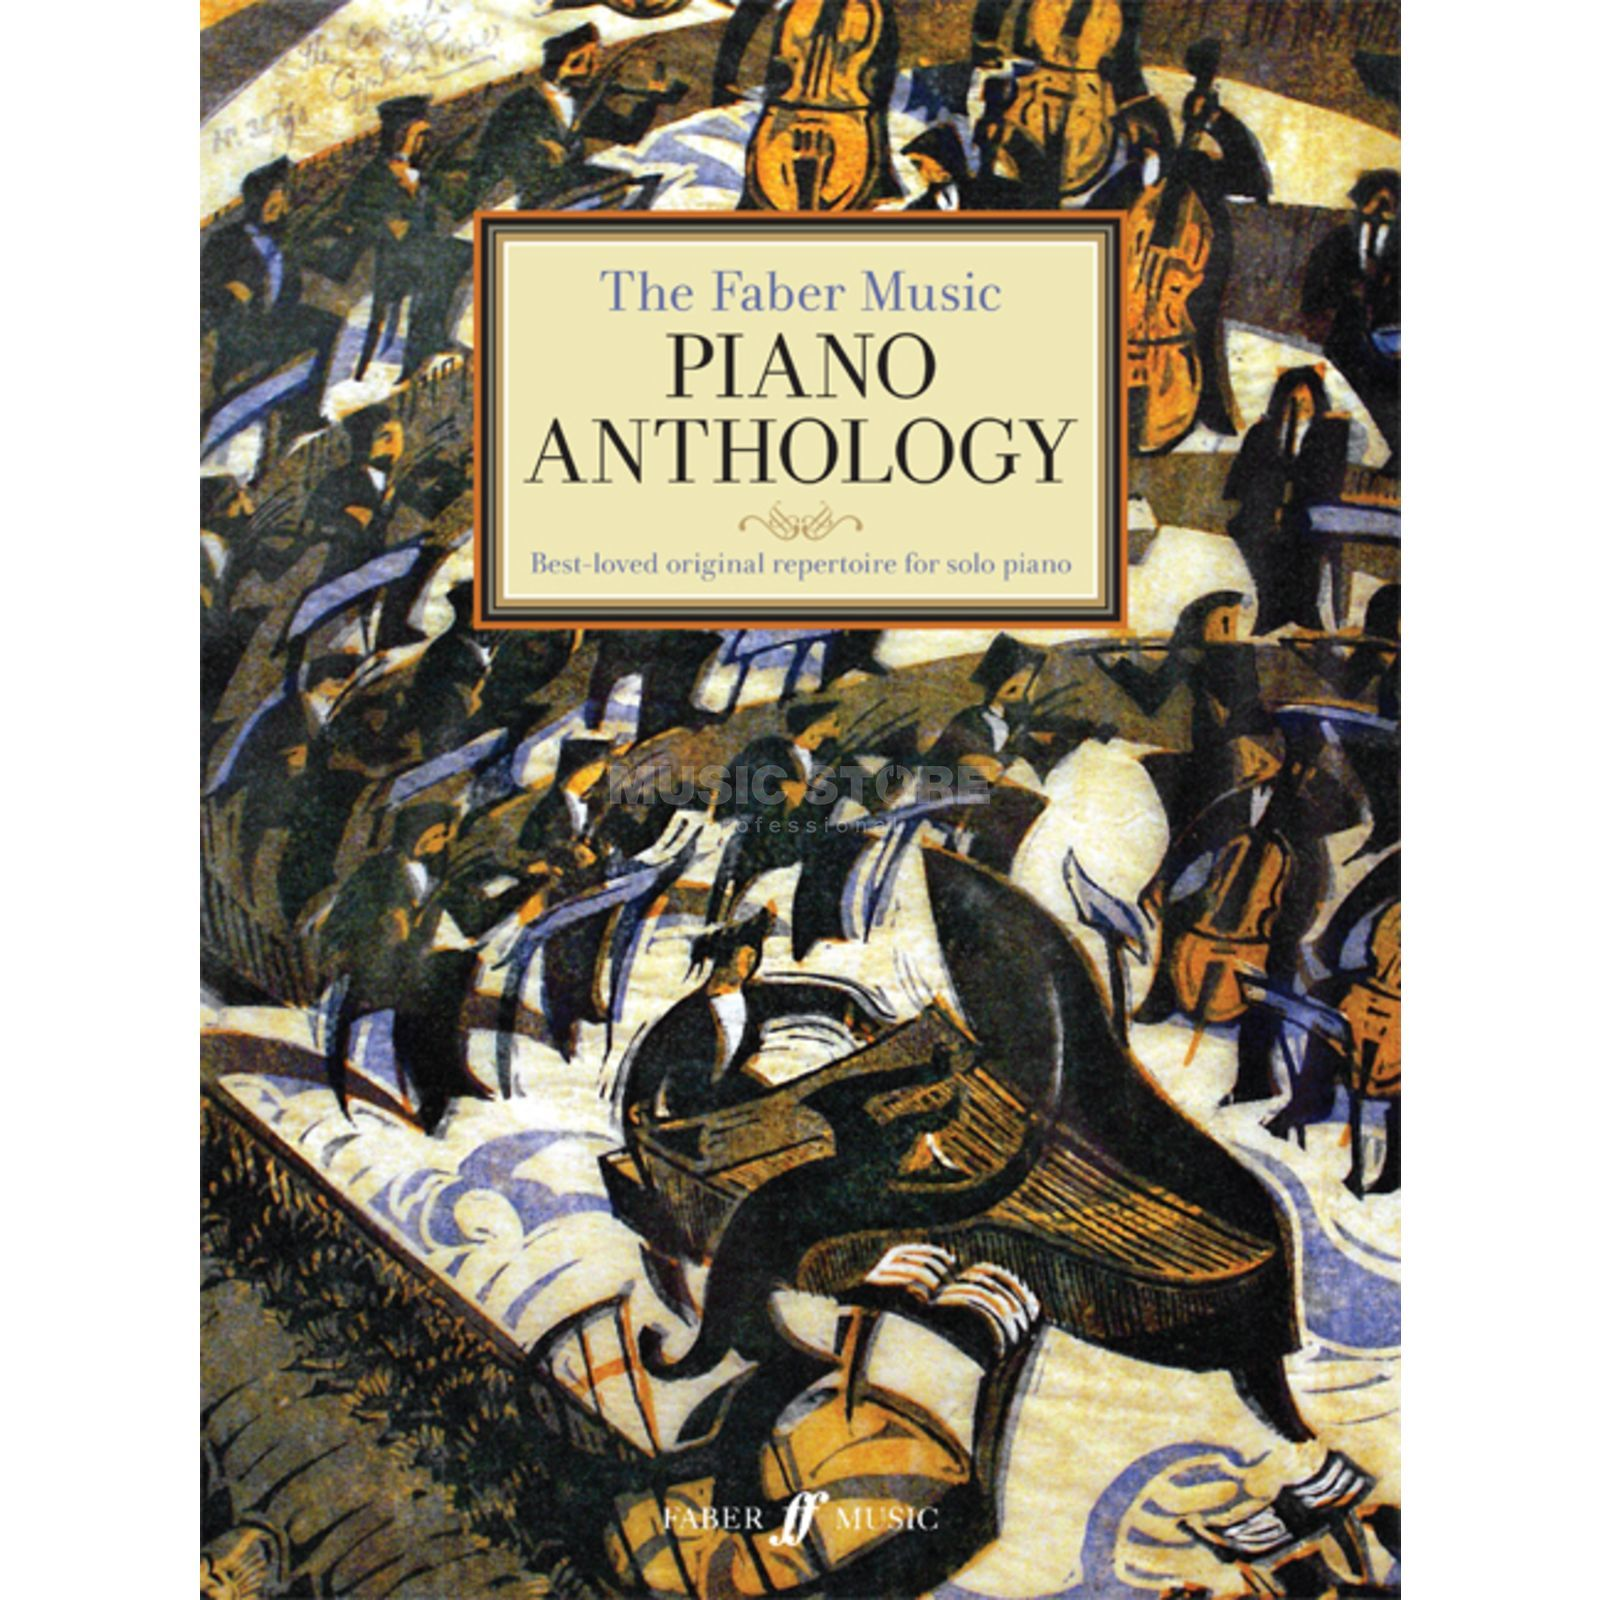 Faber Music The Faber Music Piano Anthology Produktbillede